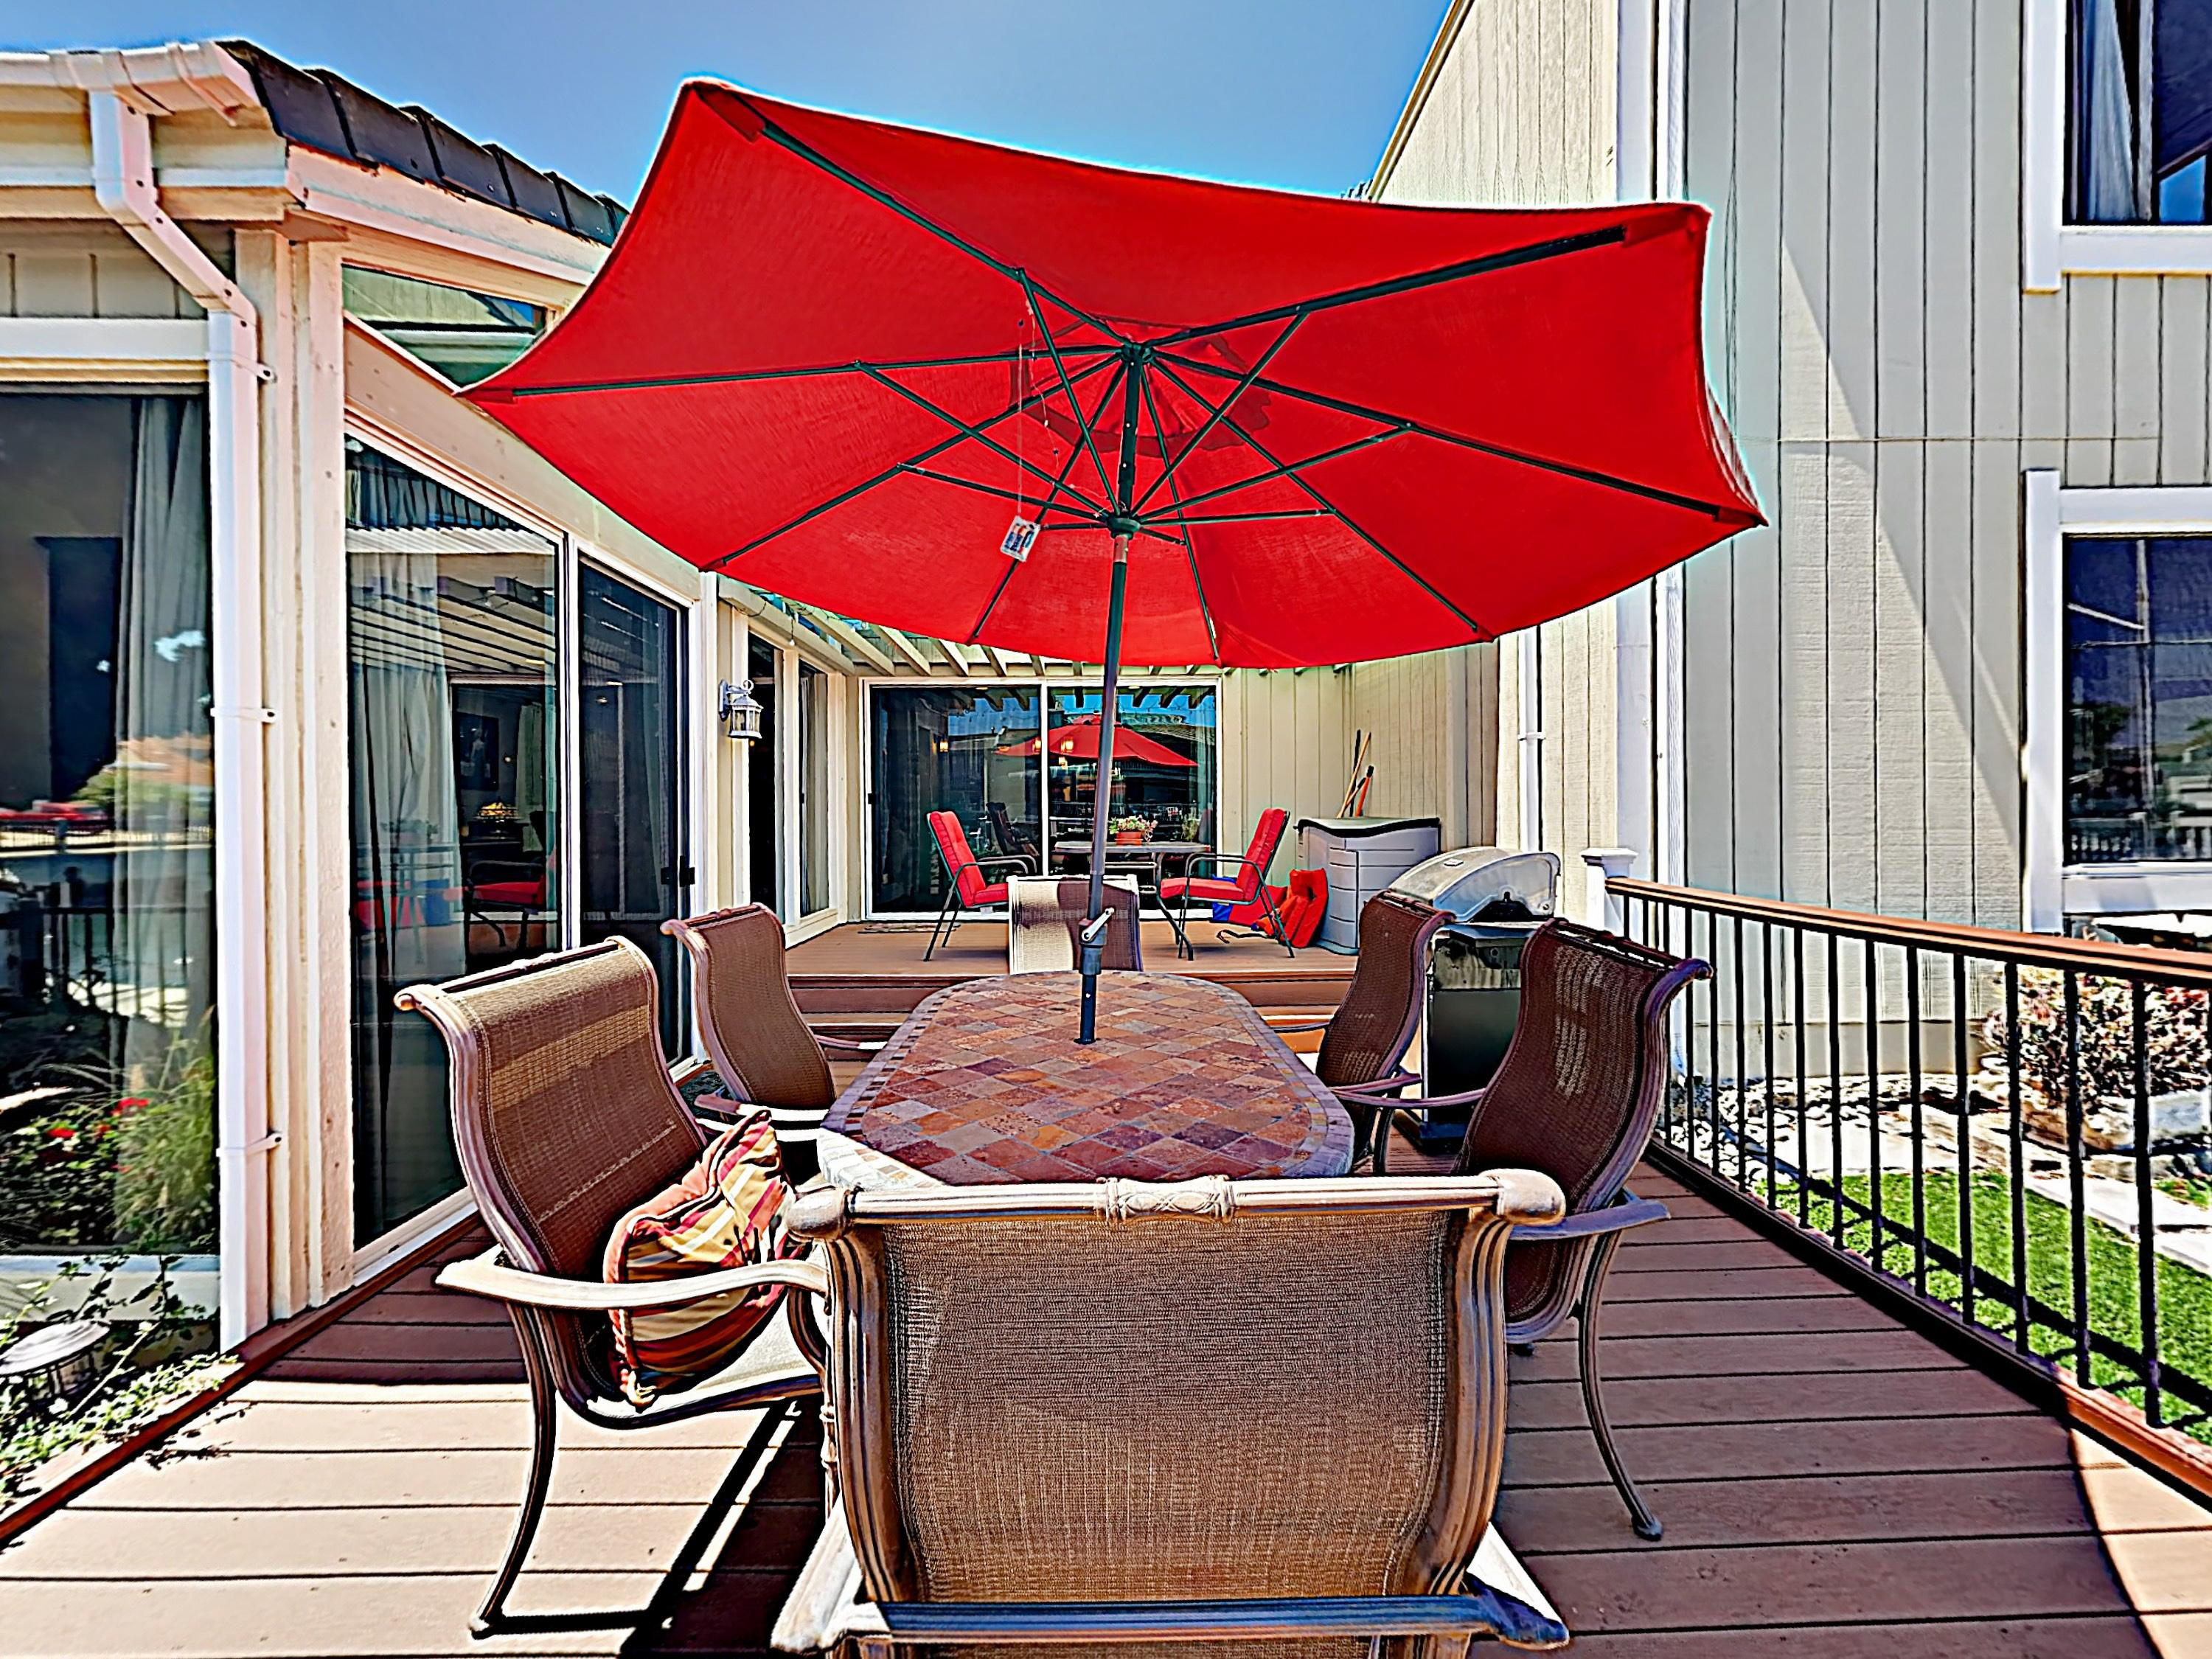 The spacious deck offers plenty of space to dine al fresco and includes a 6-person table with a large umbrella.